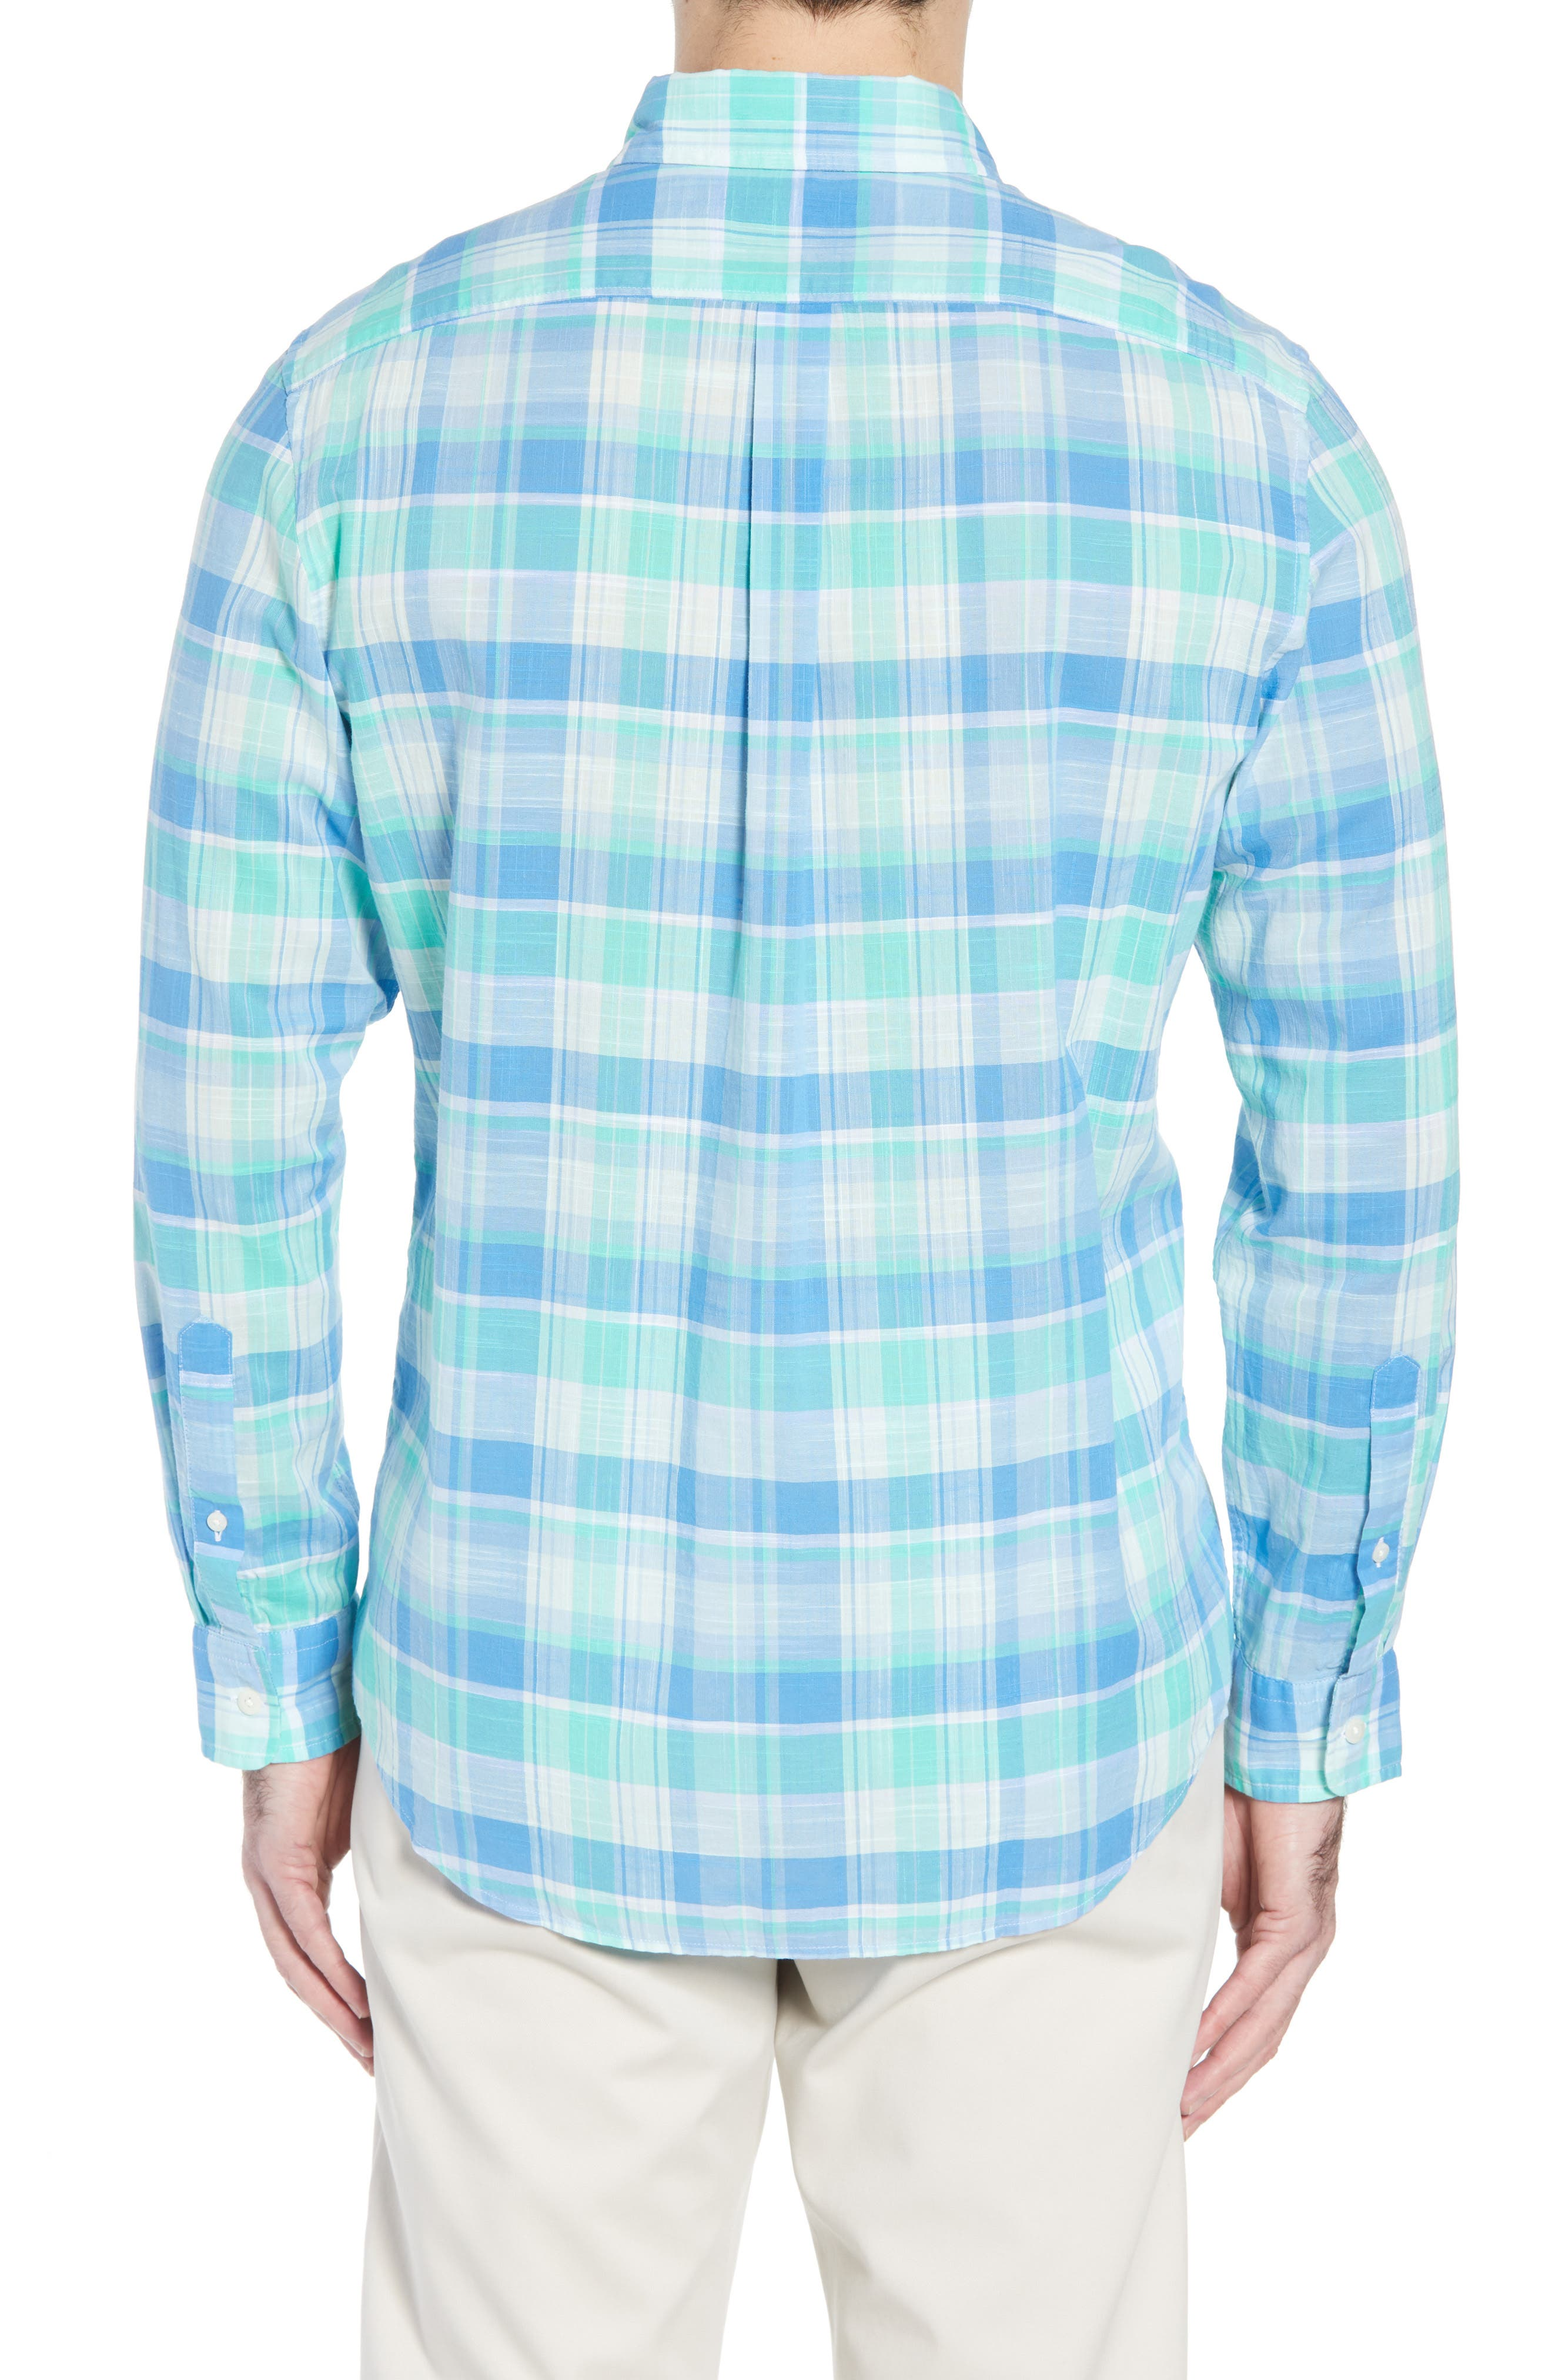 Homer Pond Murray Classic Fit Plaid Sport Shirt,                             Alternate thumbnail 2, color,                             359